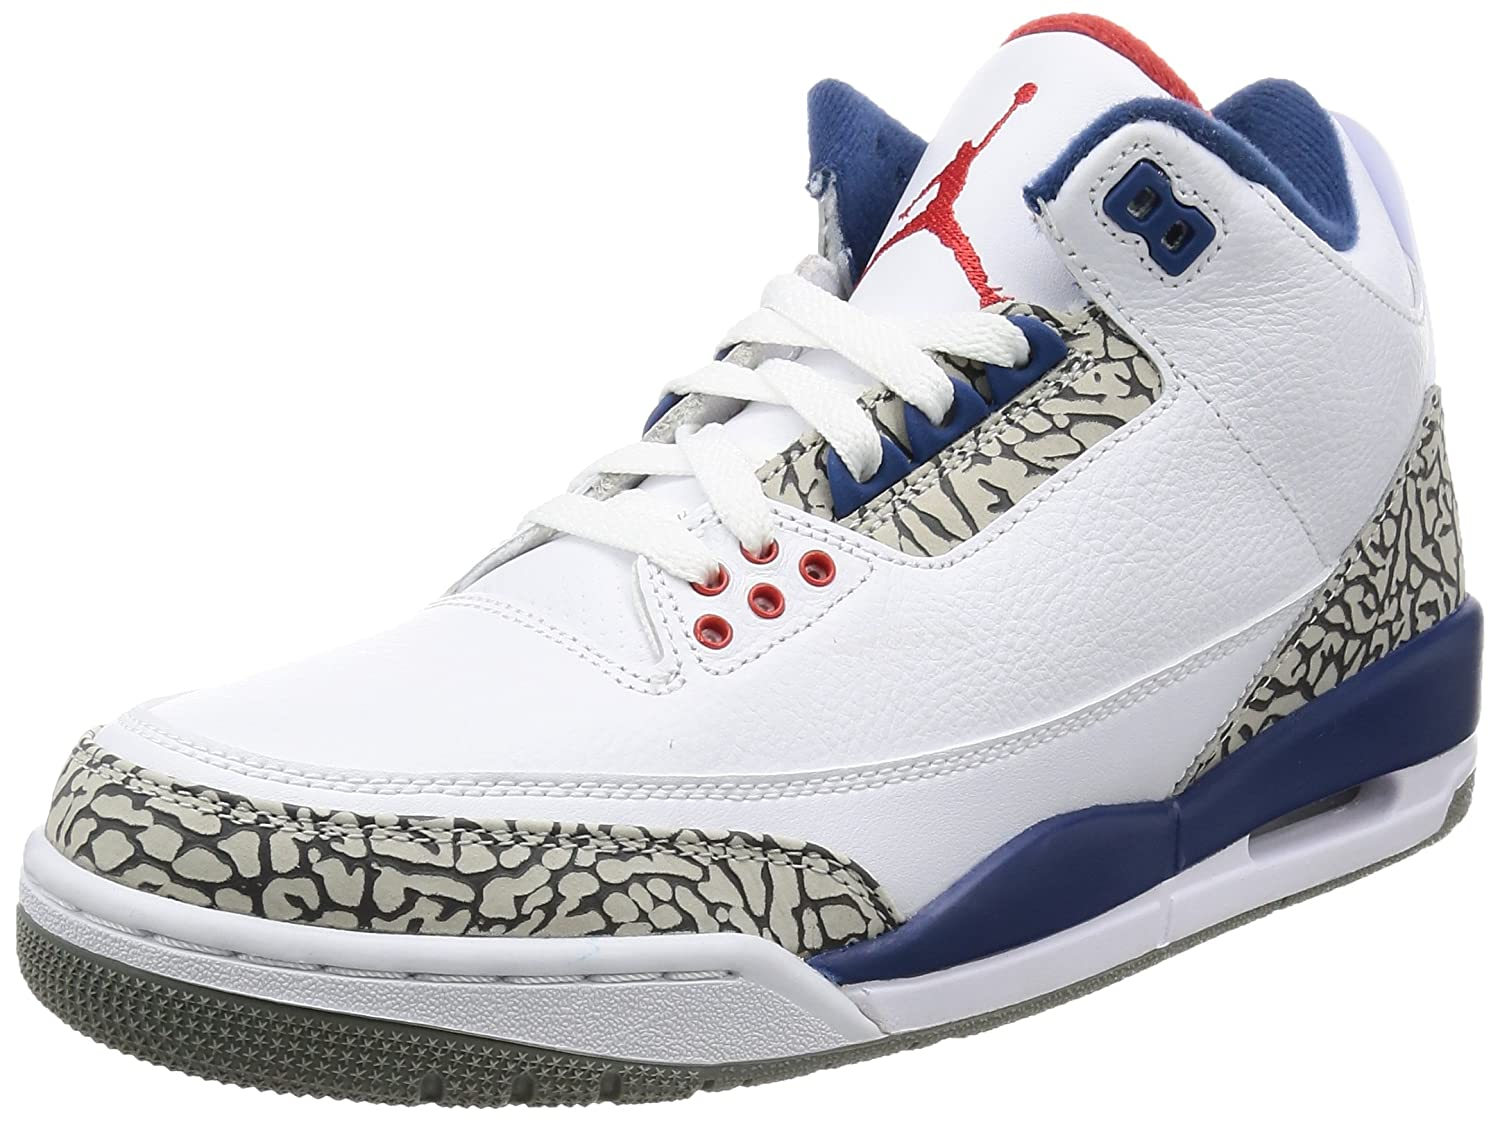 Nike Men's Air Jordan 3 Retro OG White - 10.5 D(M) US